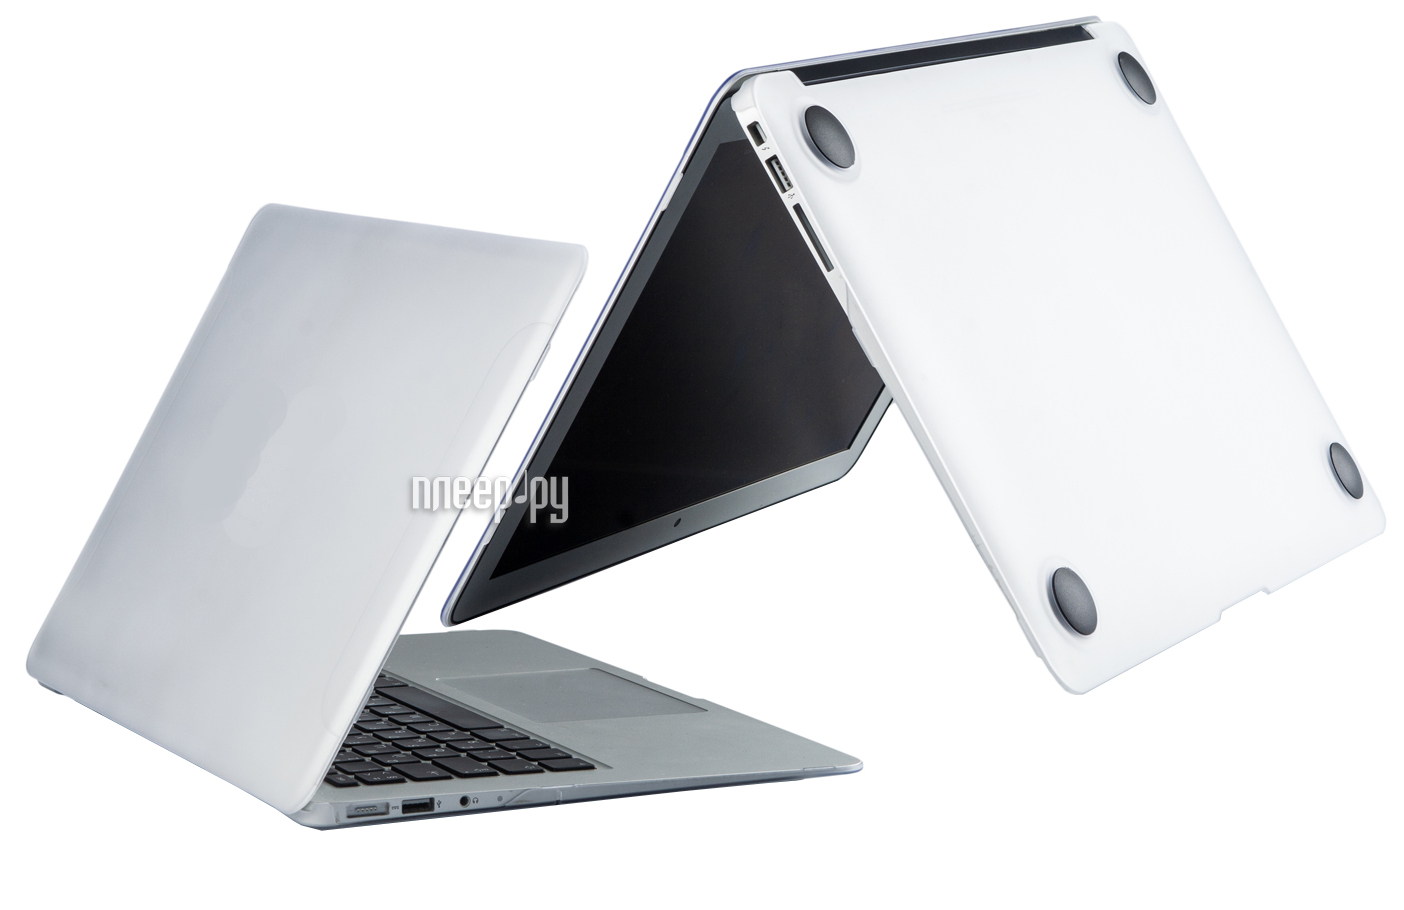 Аксессуар Чехол 11.6 BTA MacBookCase for Apple Macbook Air 11 bta-ncs-air11-clear Clear  Pleer.ru  1331.000